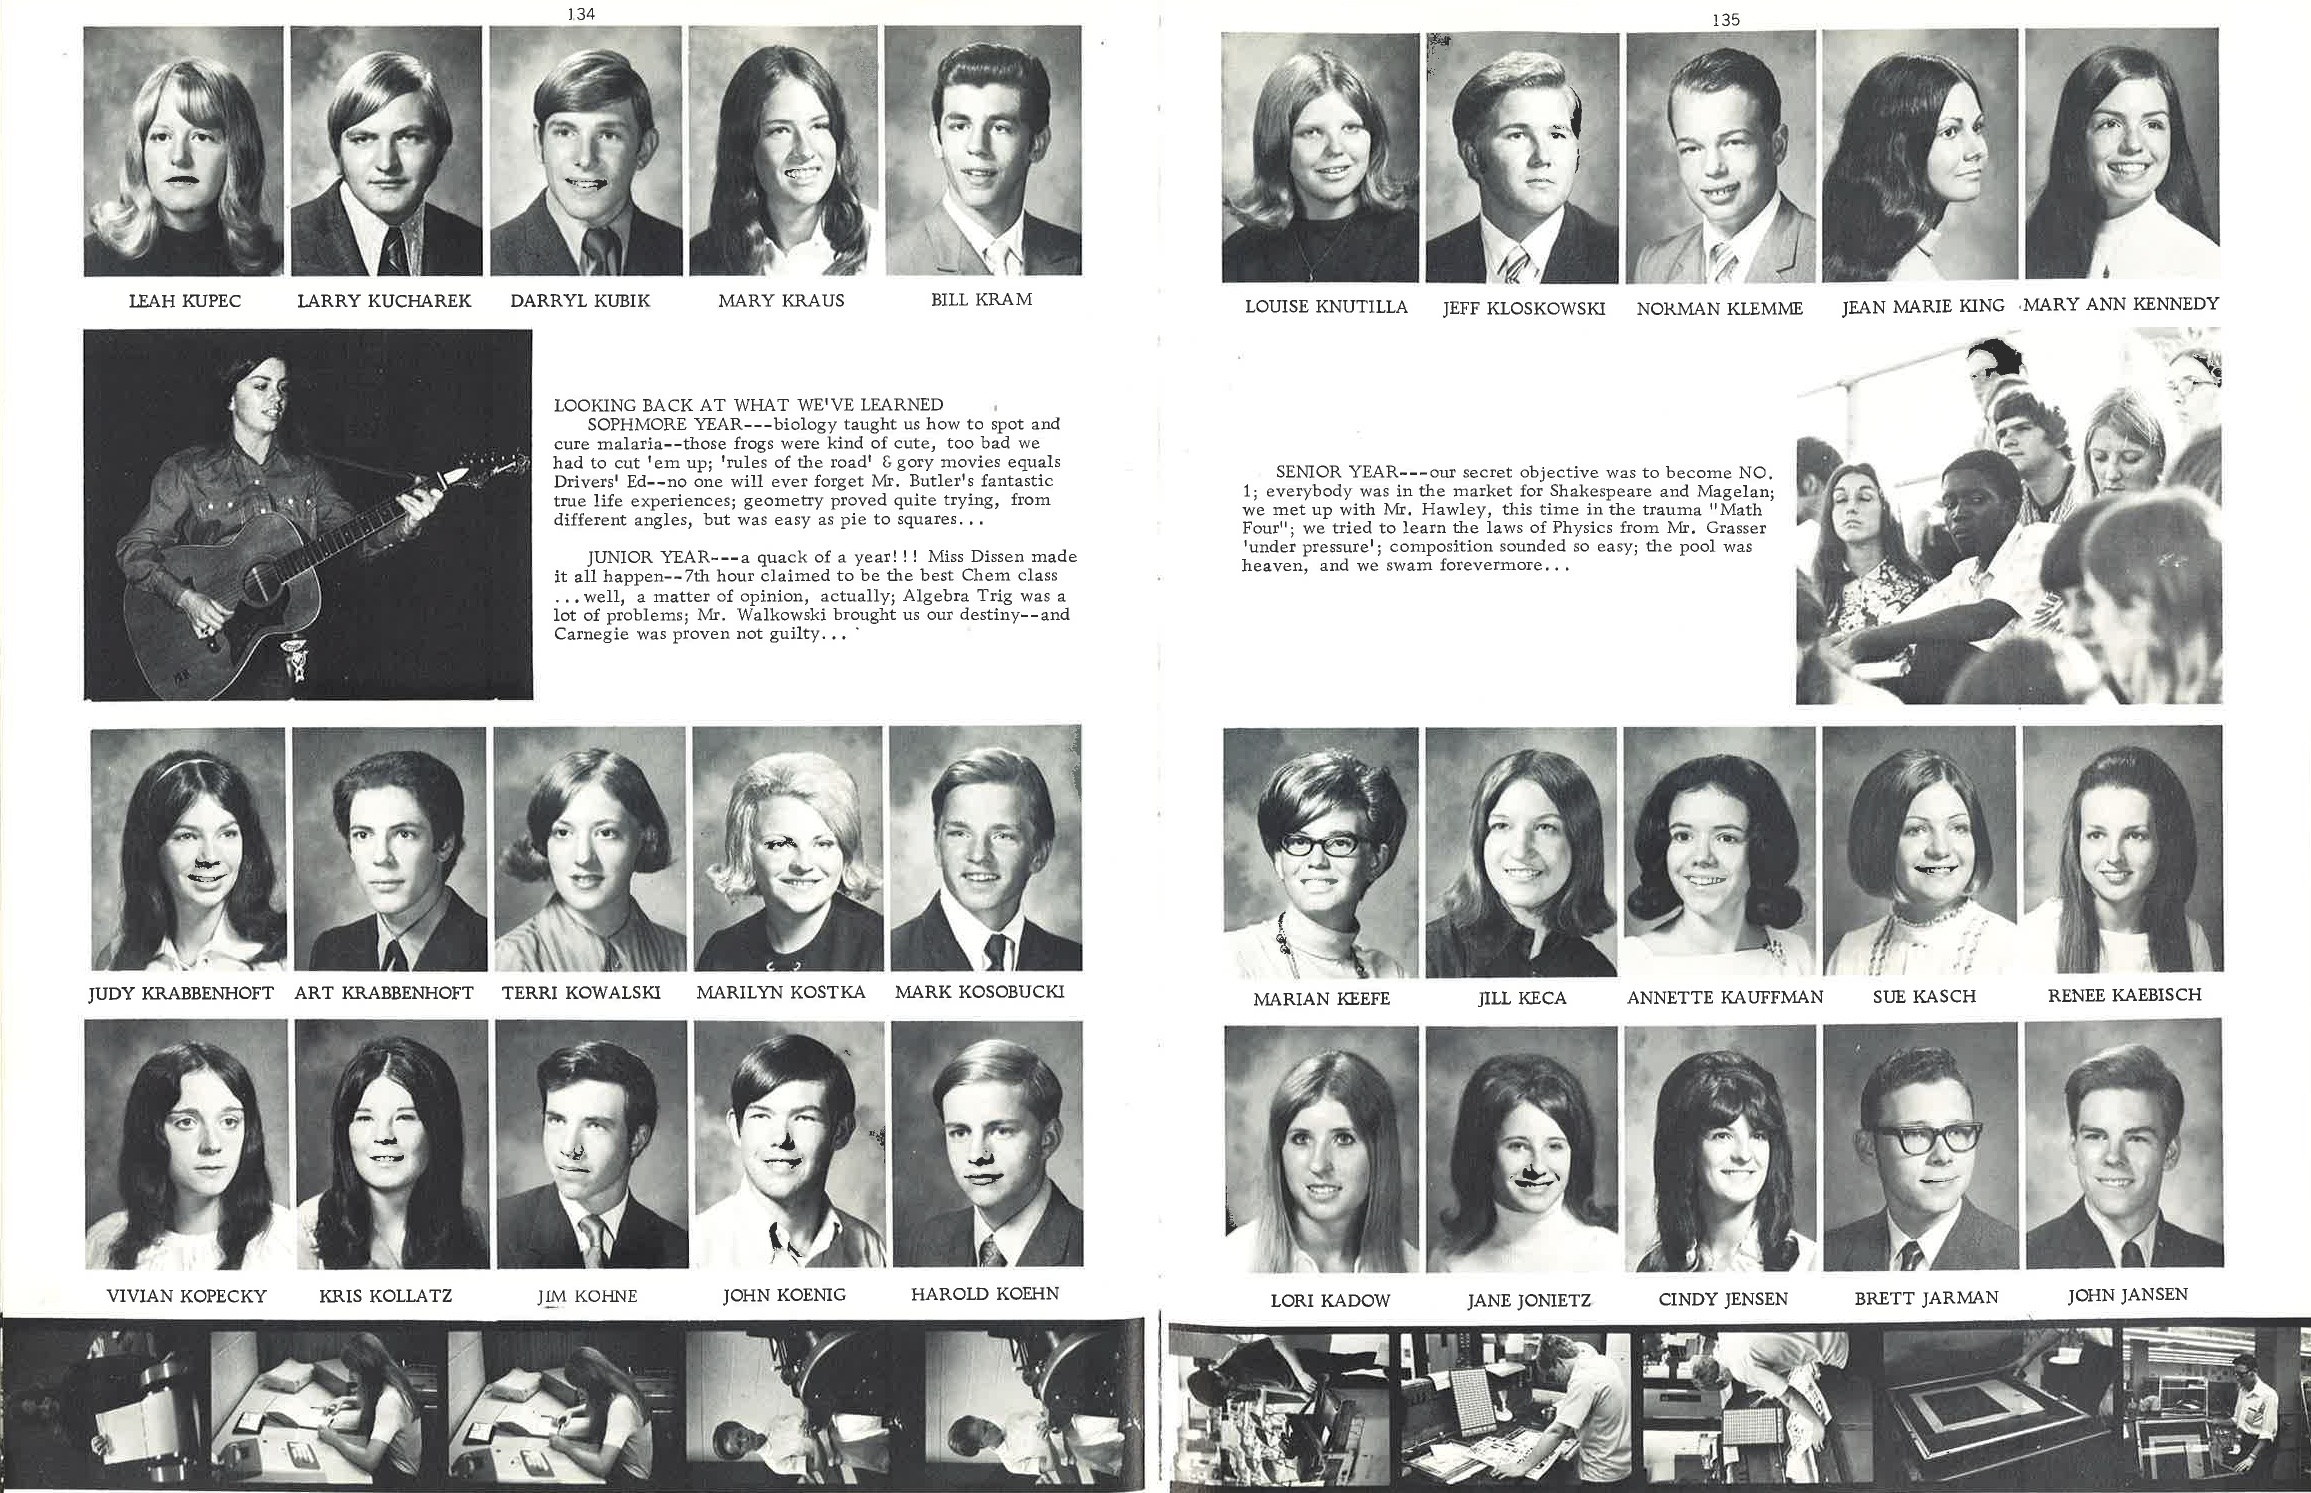 1972_Yearbook_134-135.jpg